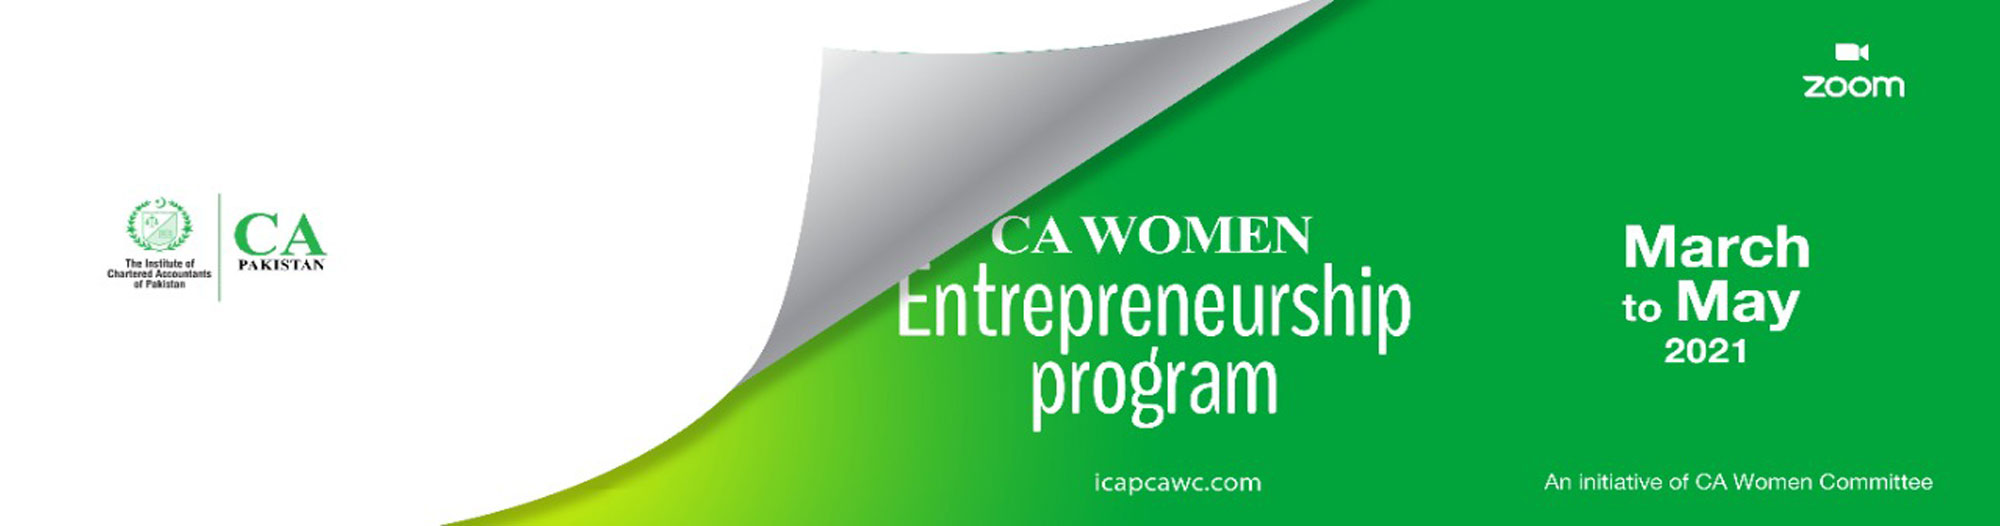 CA Women Entrepreneurship Program